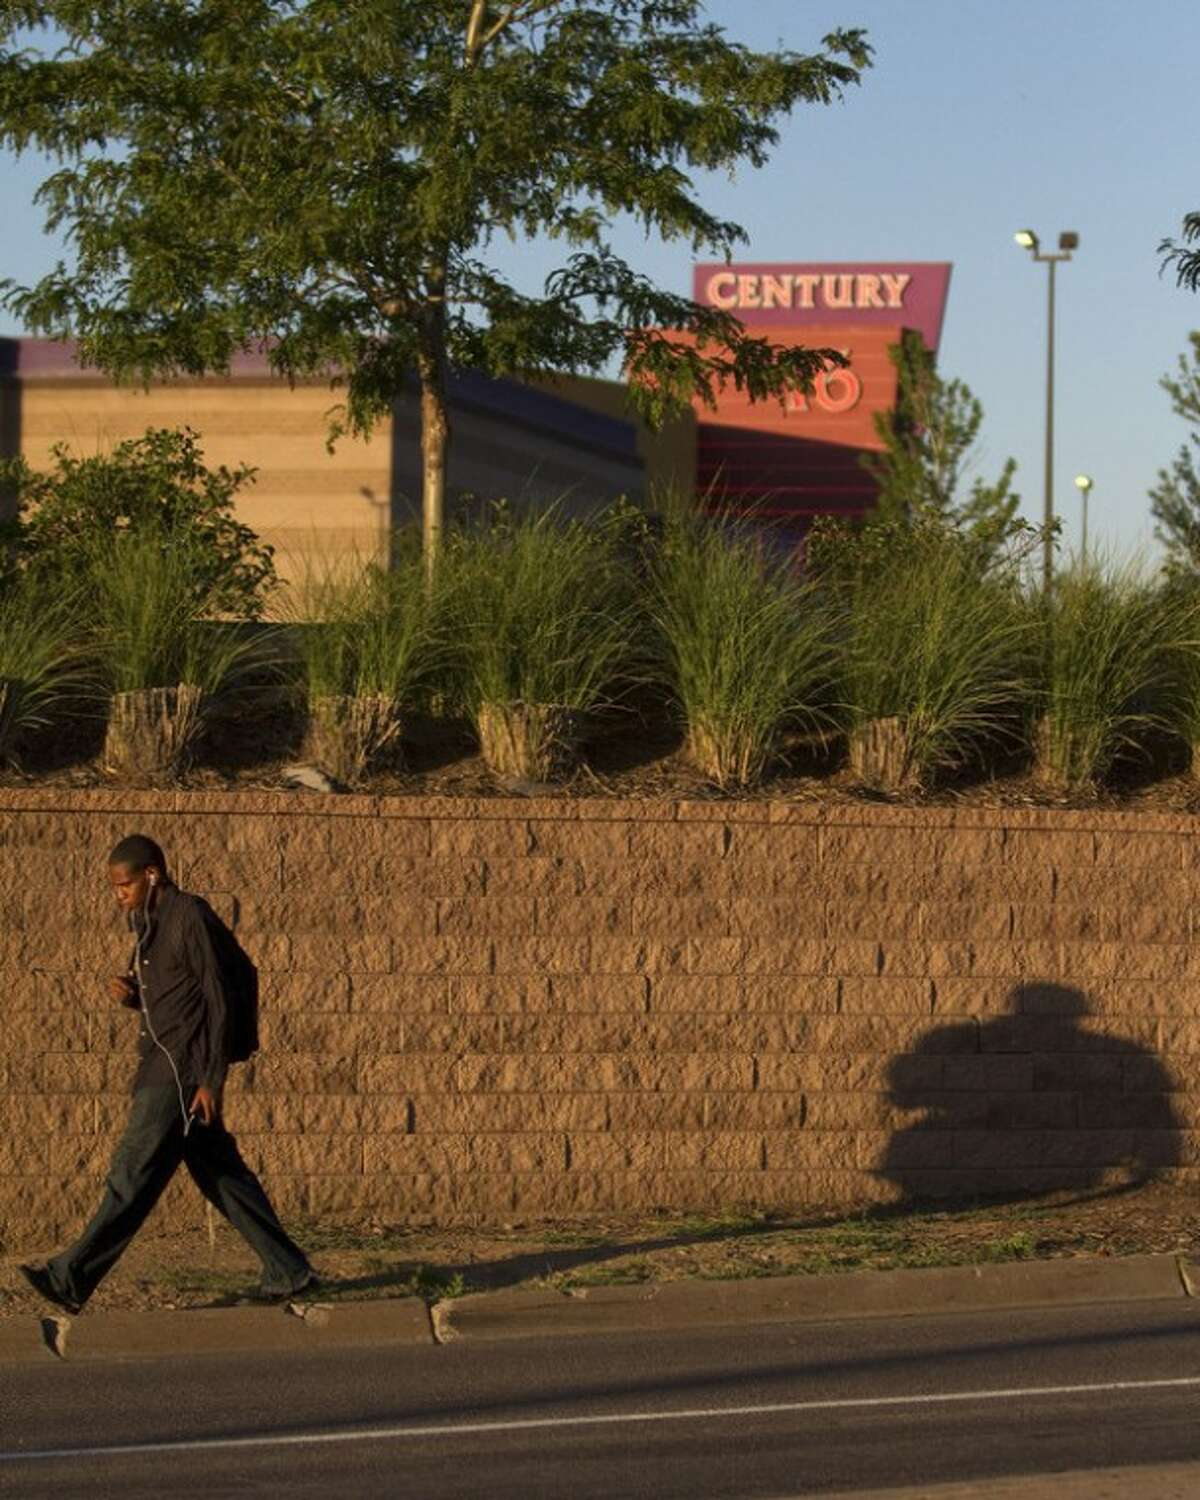 """A man walks by the Century Theater a day after a deadly shooting on Saturday, July 21, 2012 in Aurora, Colo. Twelve people were killed and dozens were injured in the attack early Friday at the packed theater during a showing of the Batman movie, """"Dark Knight Rises."""" Police have identified the suspected shooter as James Holmes, 24. (AP Photo/Barry Gutierrez)"""